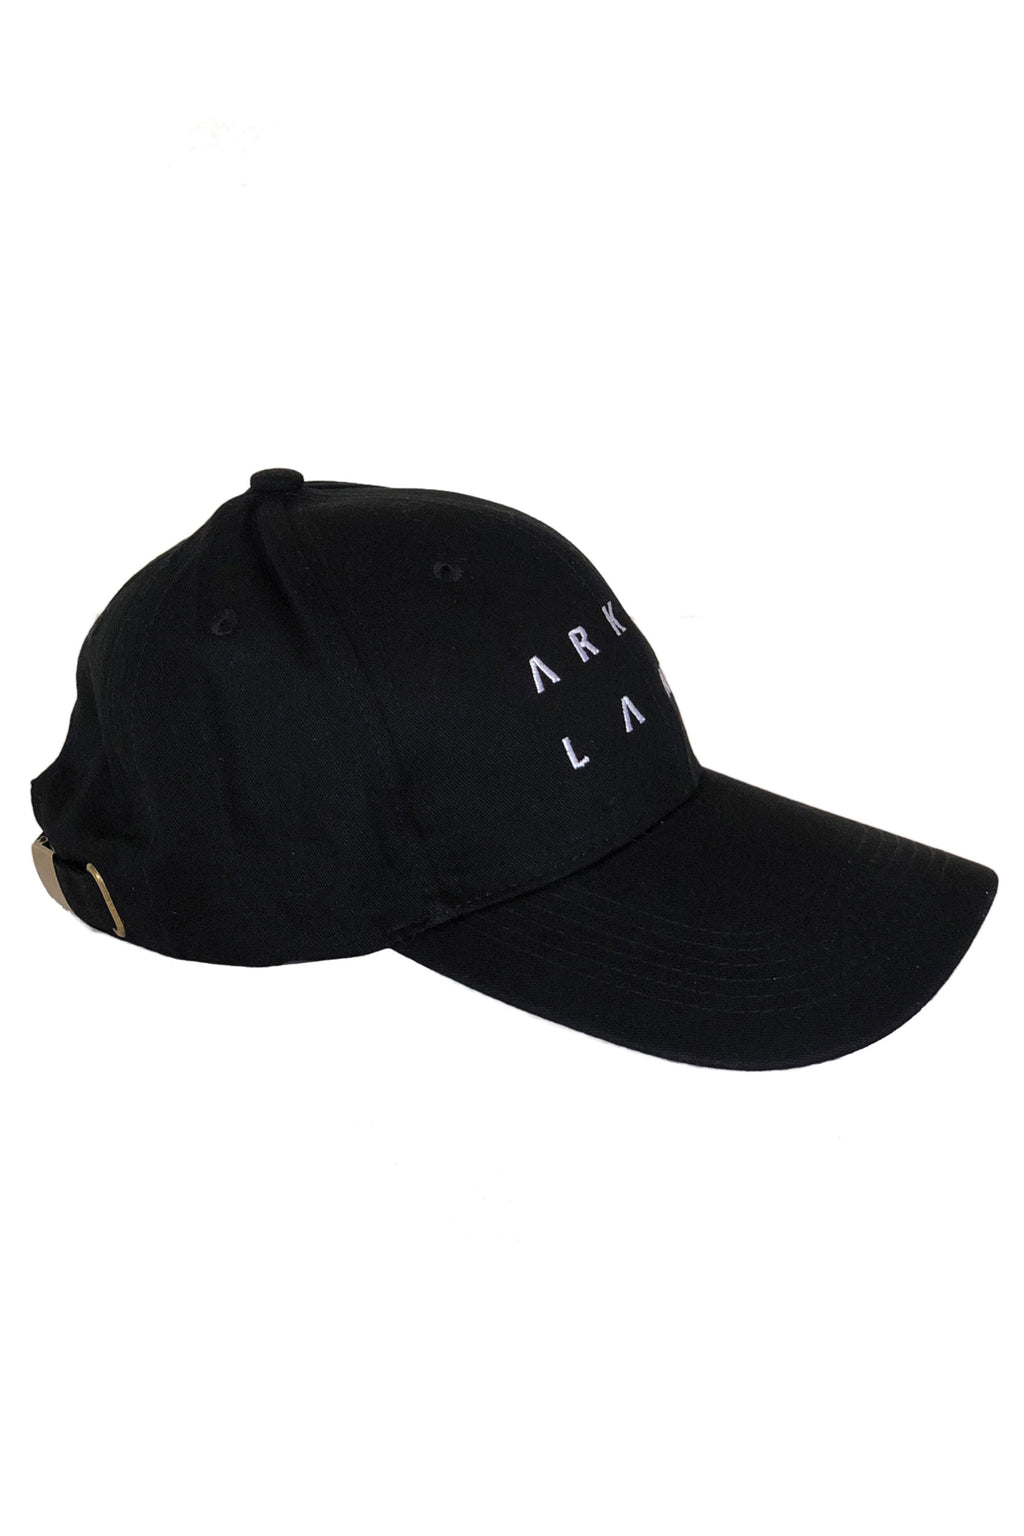 ONE CAP BLACK